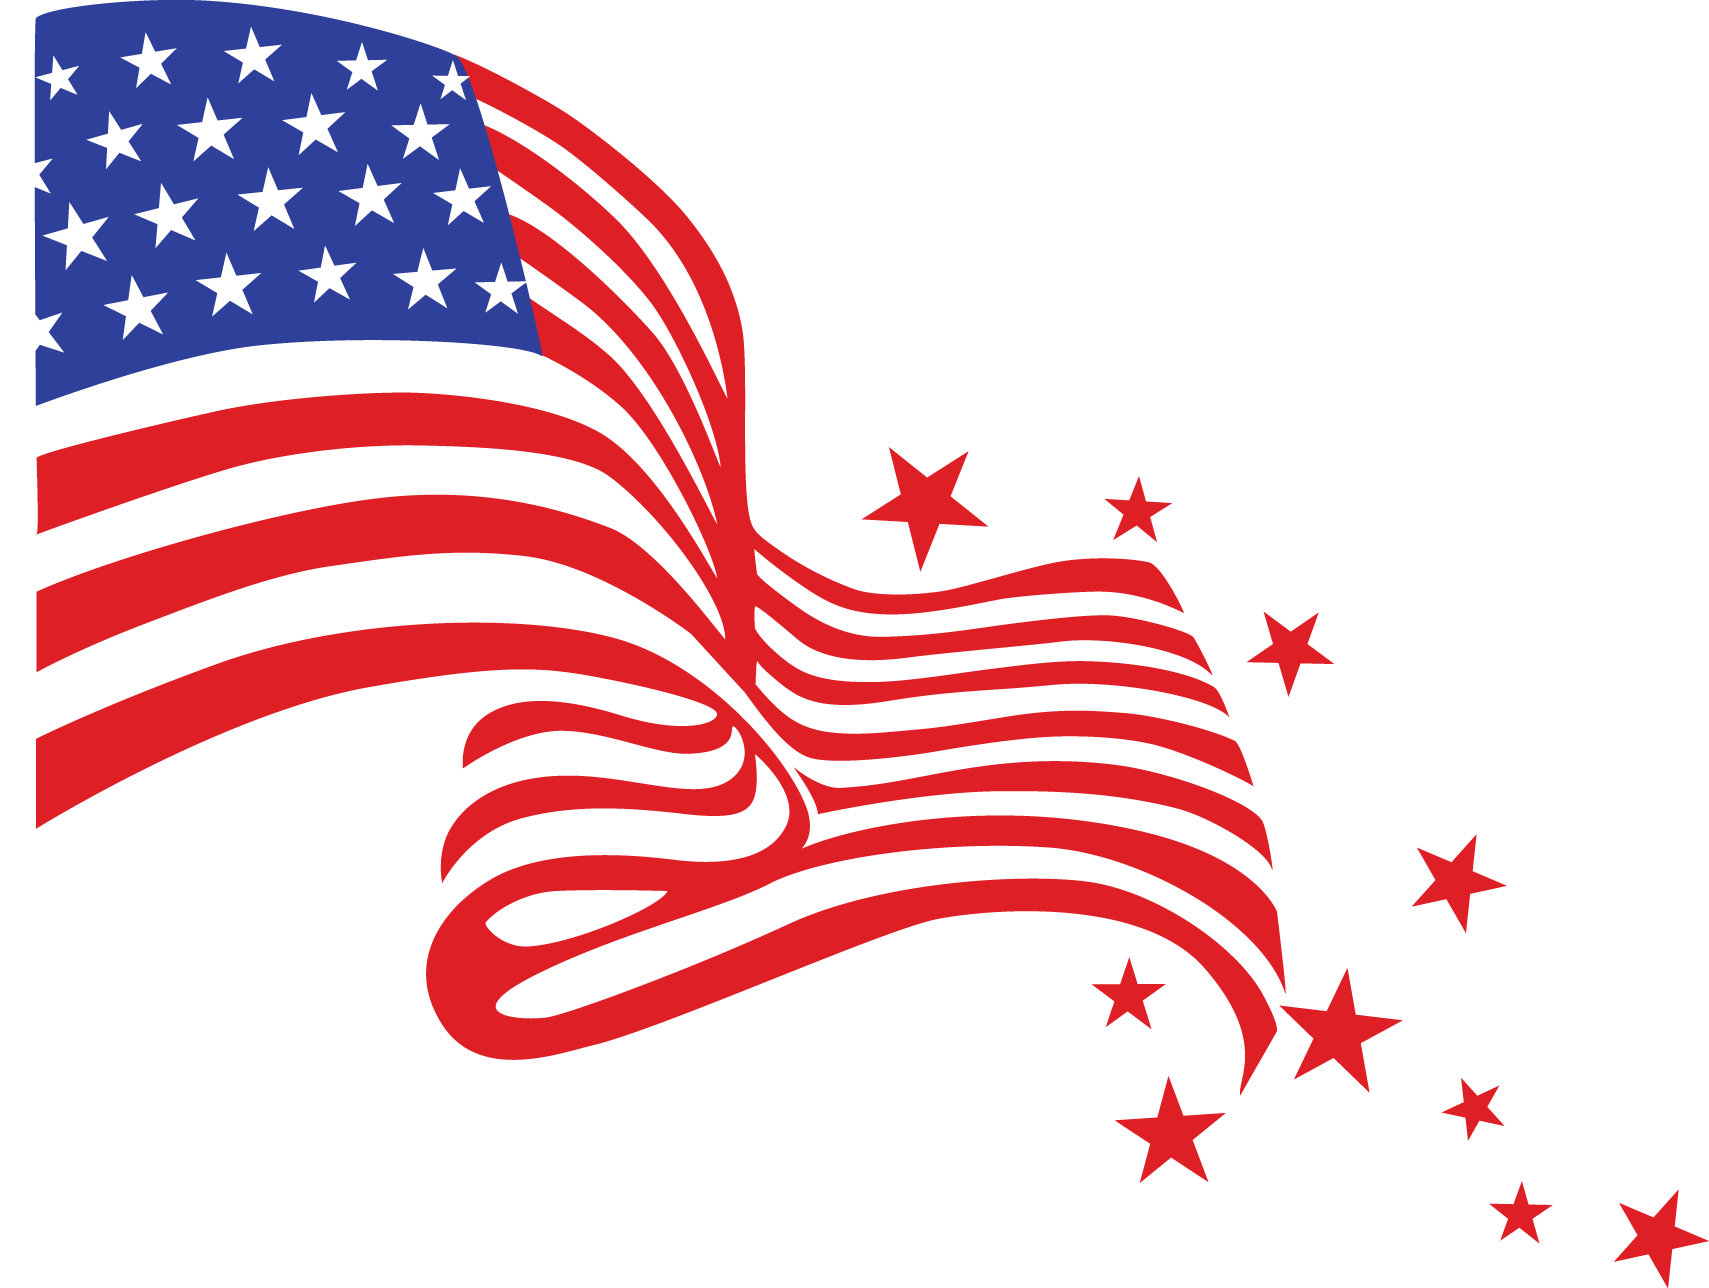 Alt american flag banner. 4th clipart independence day us image black and white